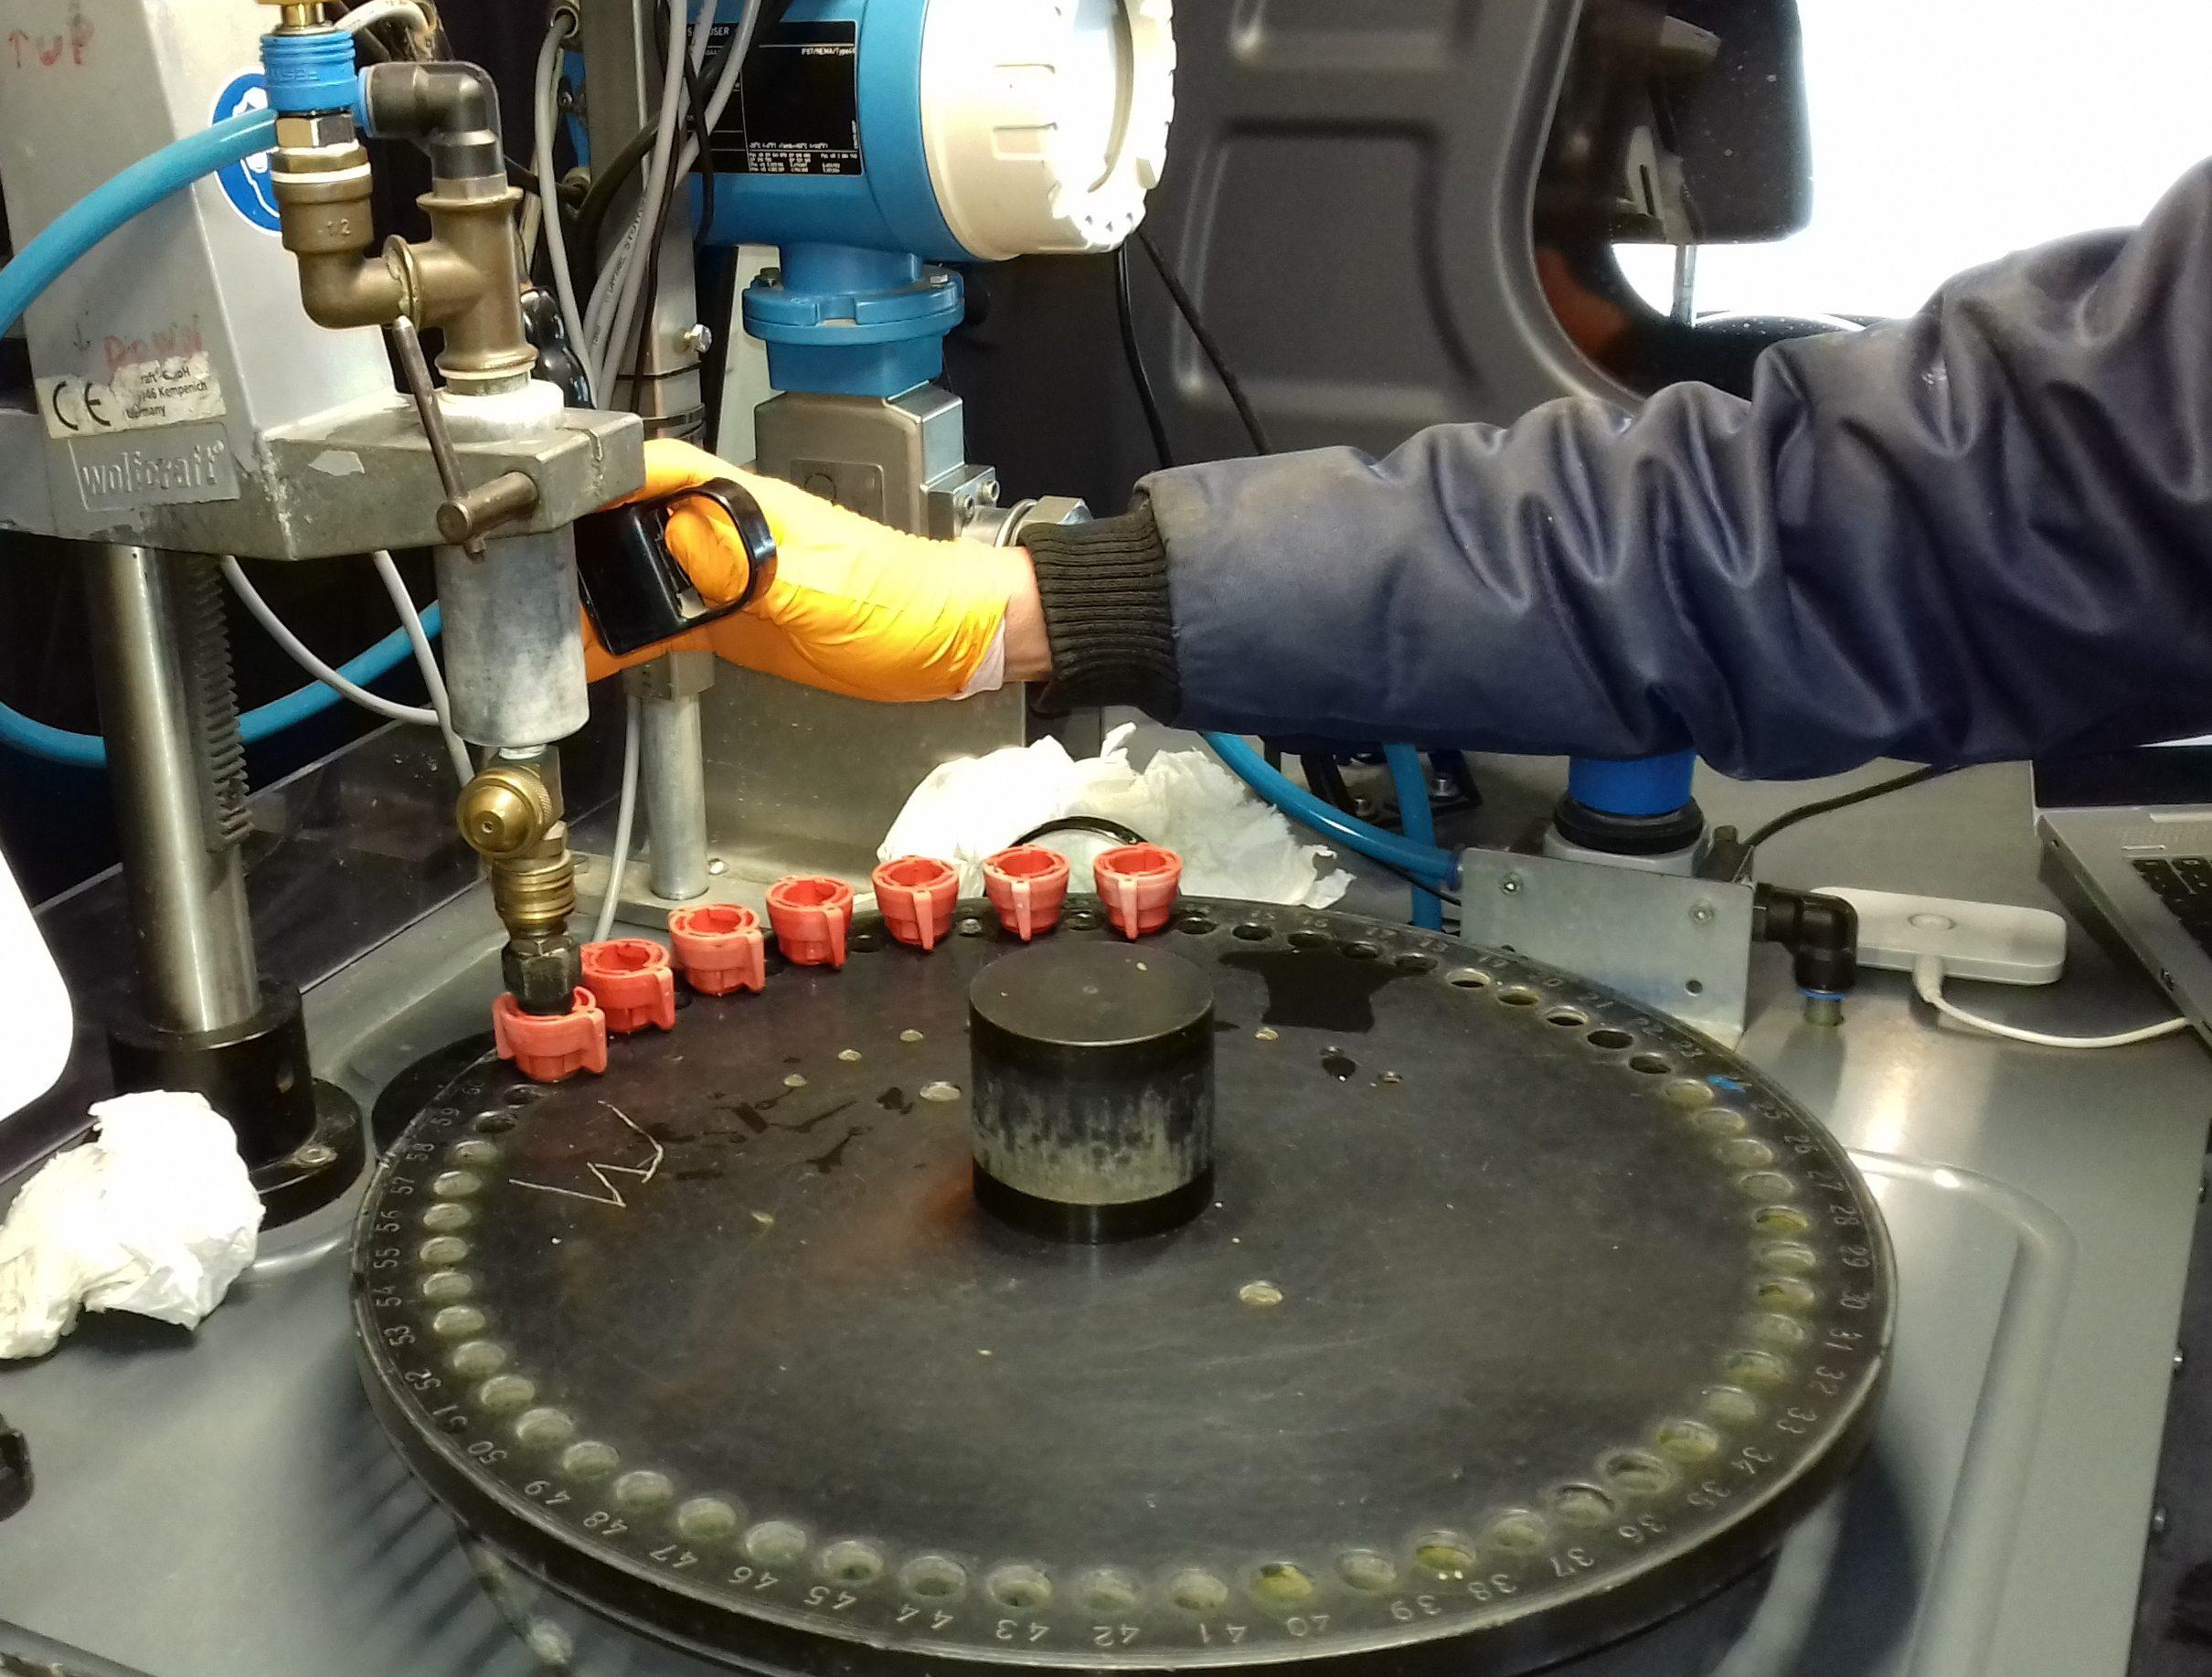 Testing nozzles on a nozzle test bench